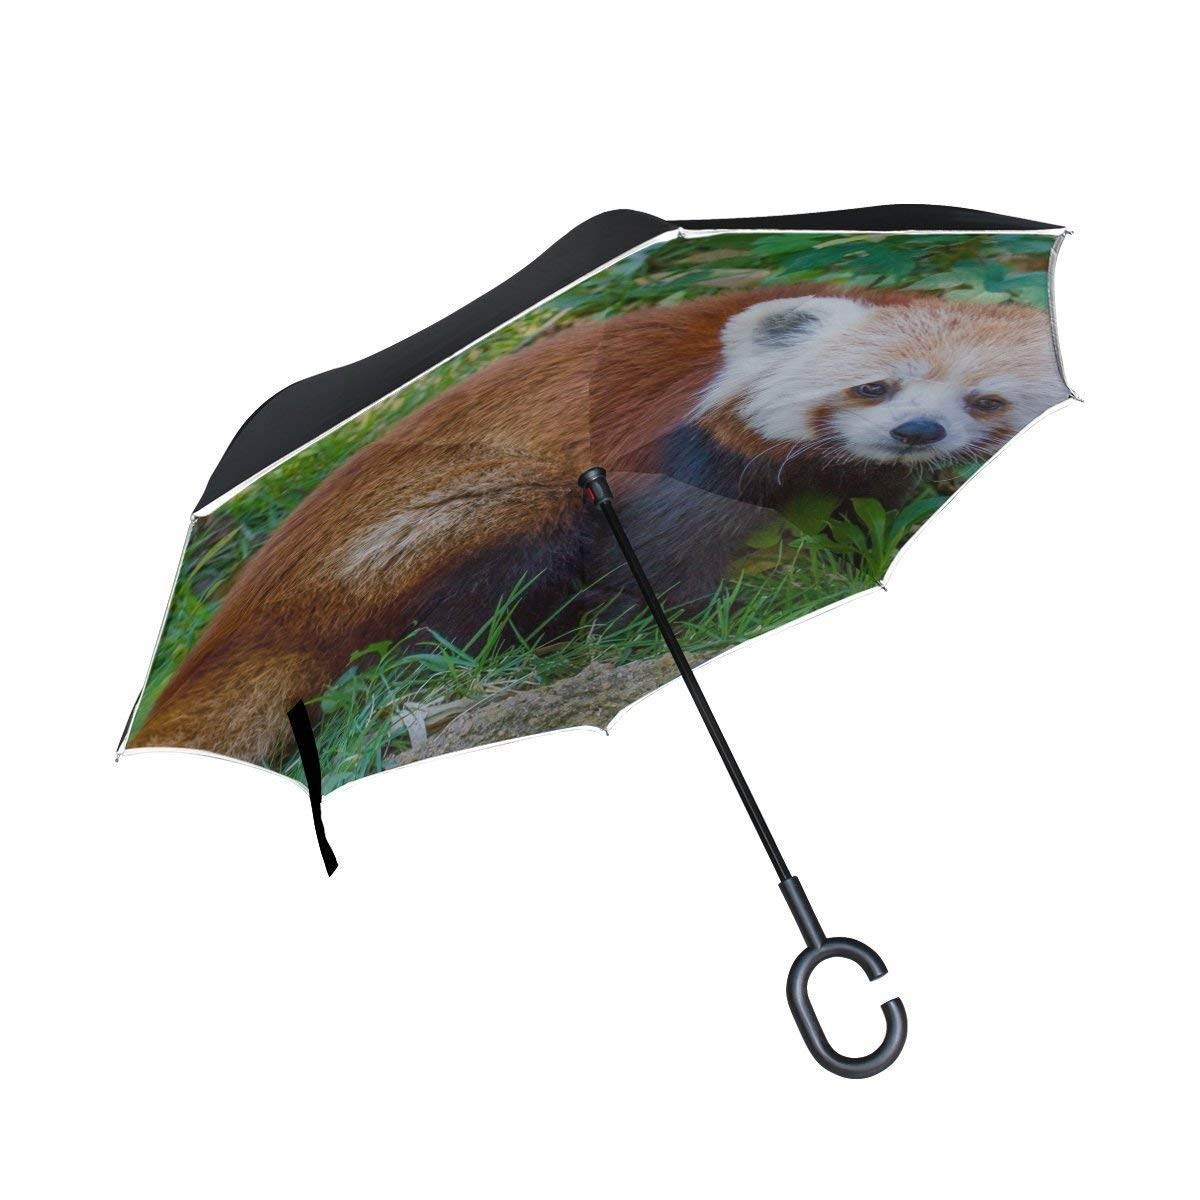 e71cc9712c3b Cheap Panda Umbrella, find Panda Umbrella deals on line at Alibaba.com